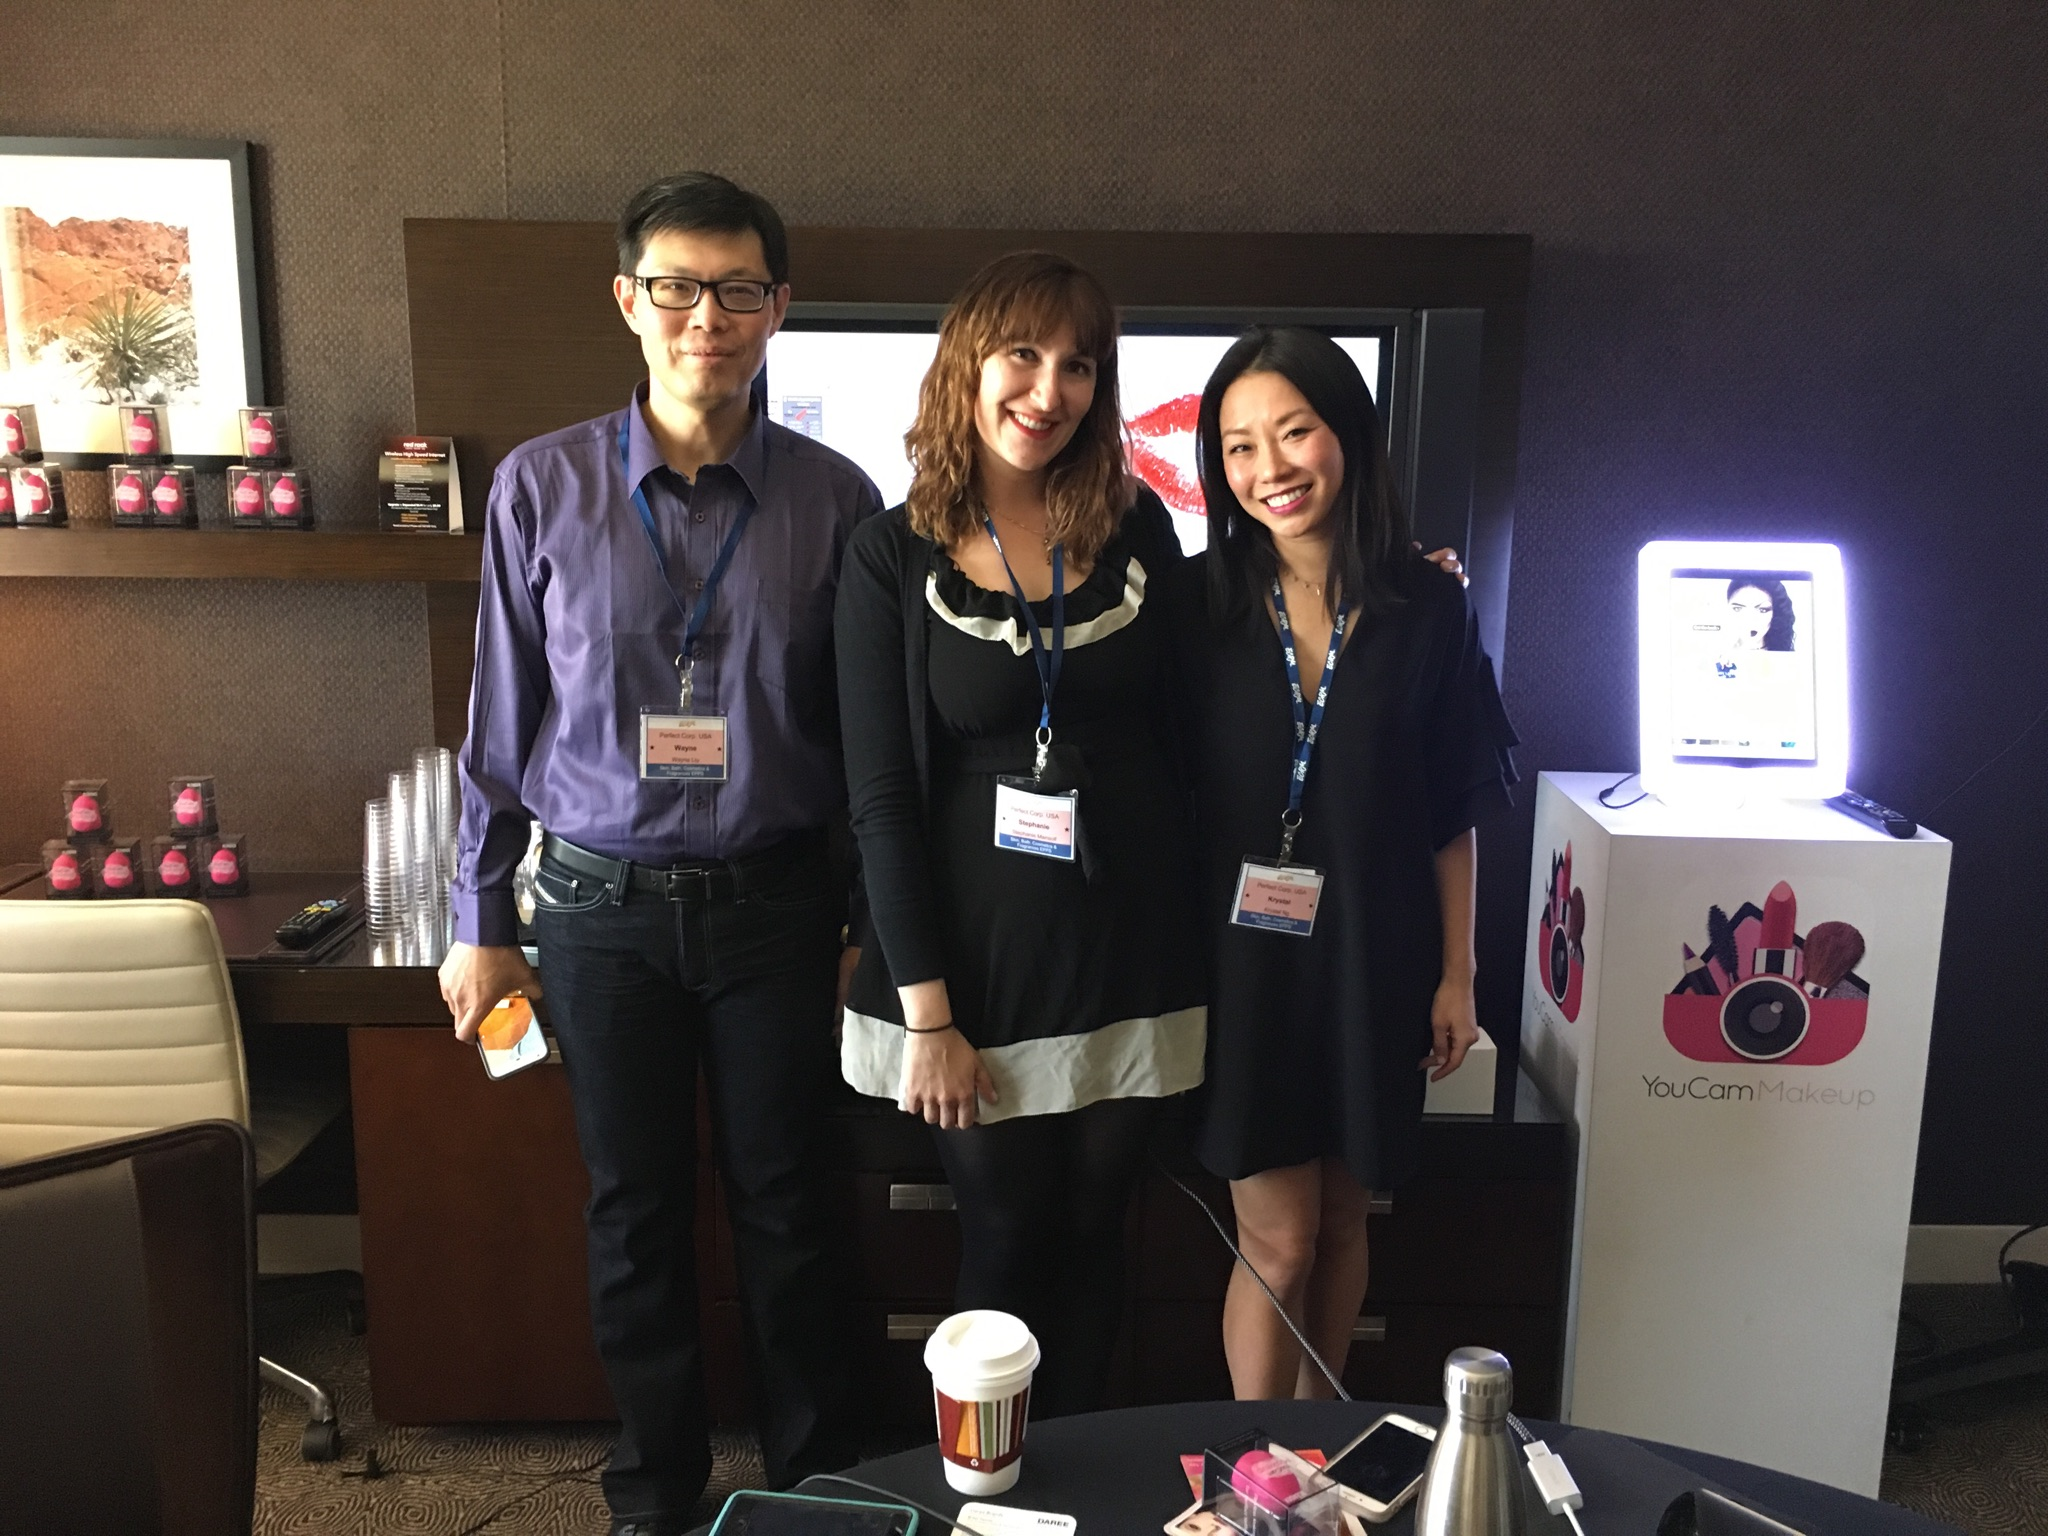 The YouCam team in their meeting suite, where they demoed their tech